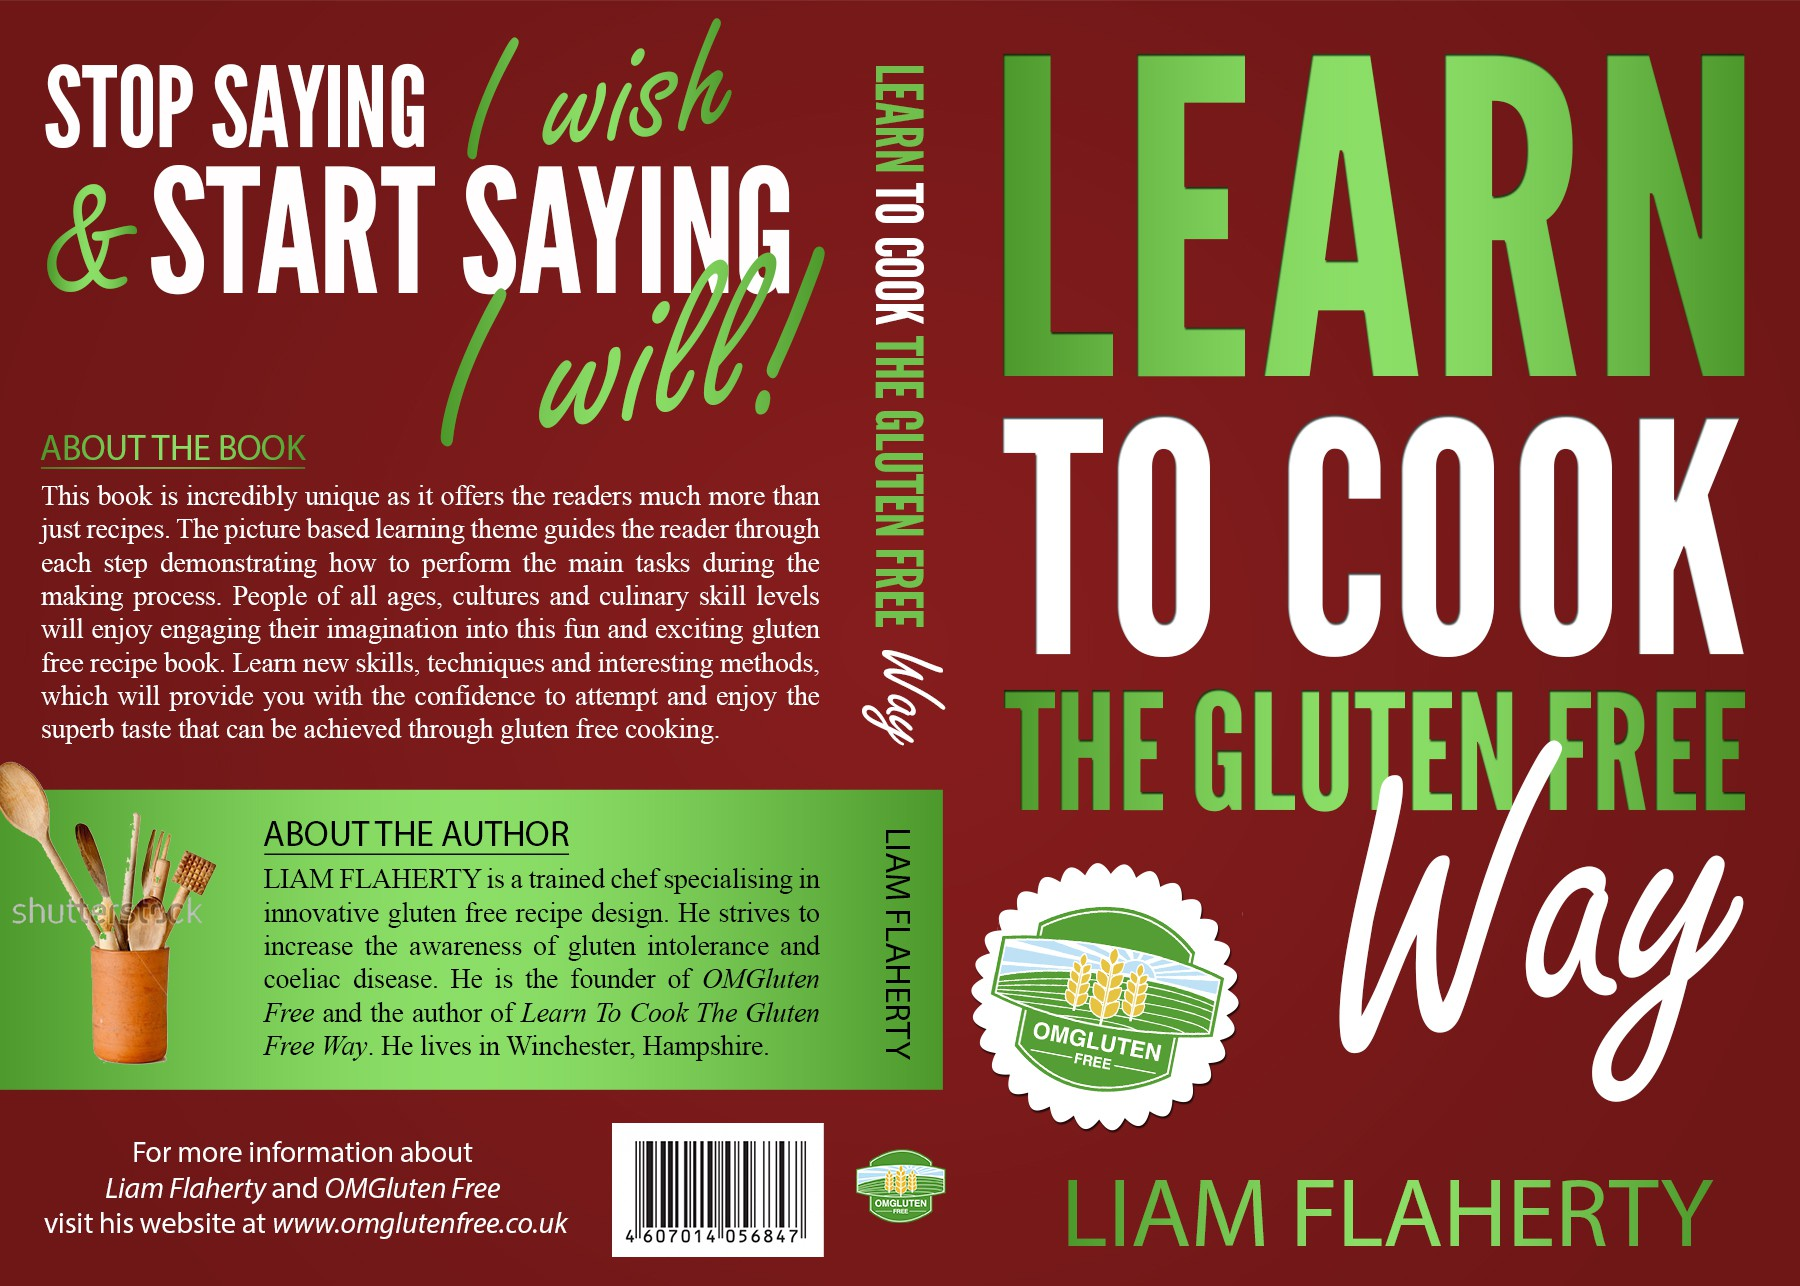 CREATE A UNIQUE COVER FOR A GLUTEN FREE COOKBOOK THAT CAPTURES THE IMAGINATION OF ALL FOOD LOVERS!